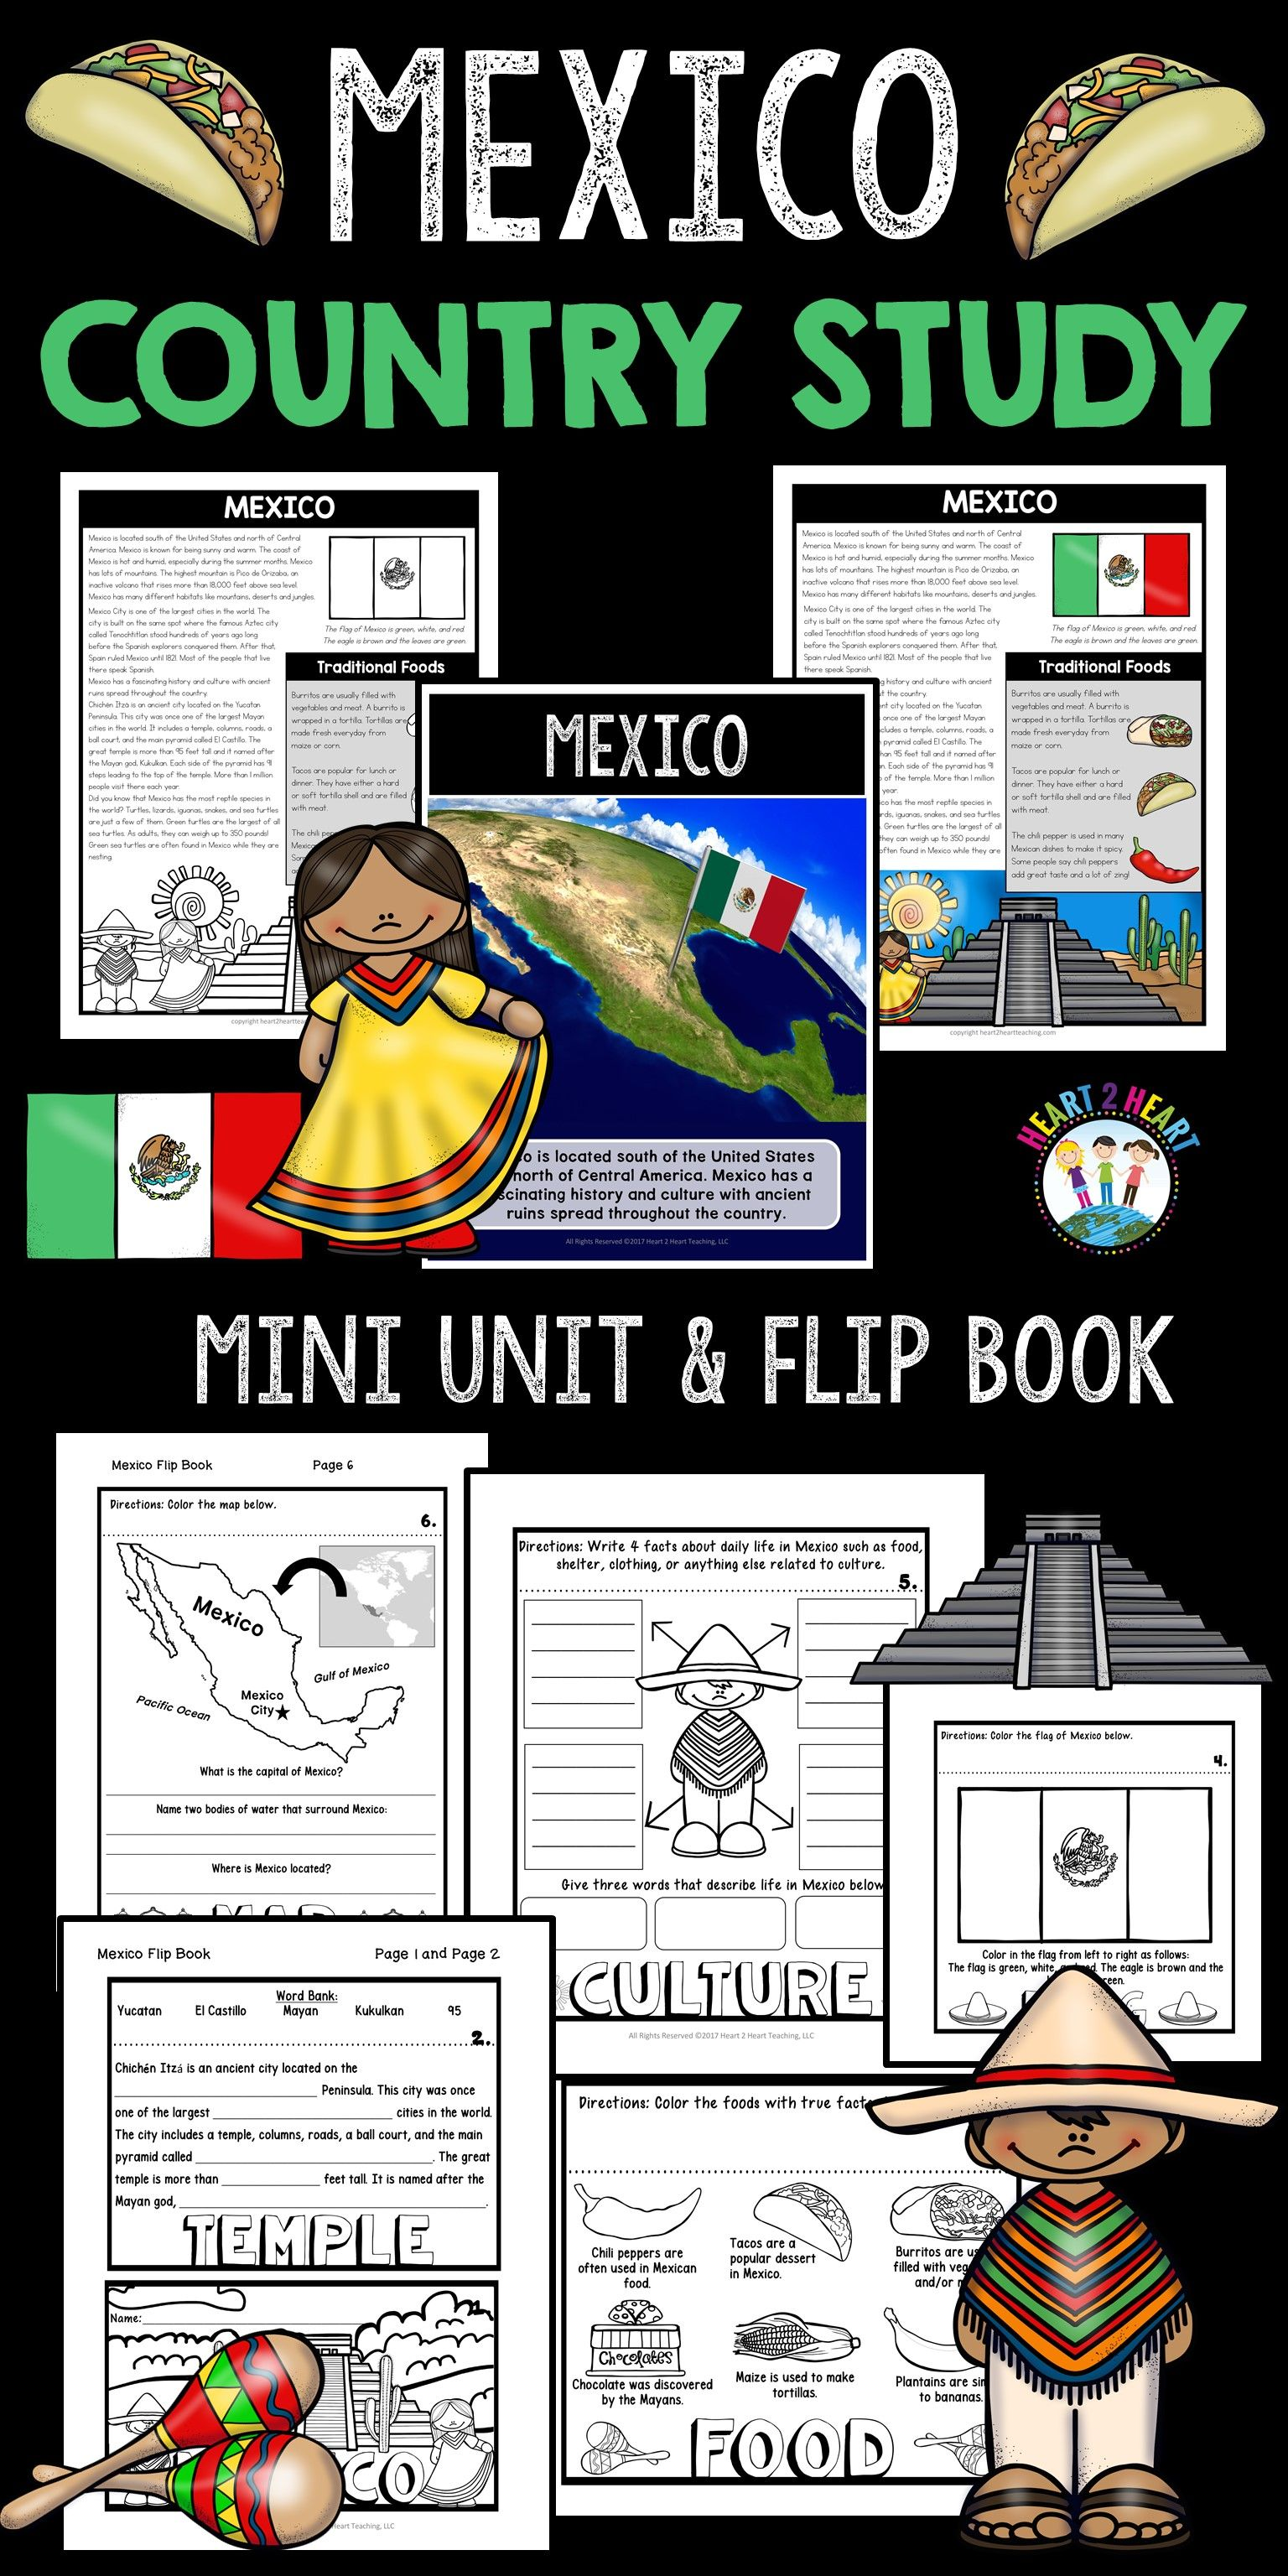 Mexico Country Study A Mini Unit With Mexico Flip Book